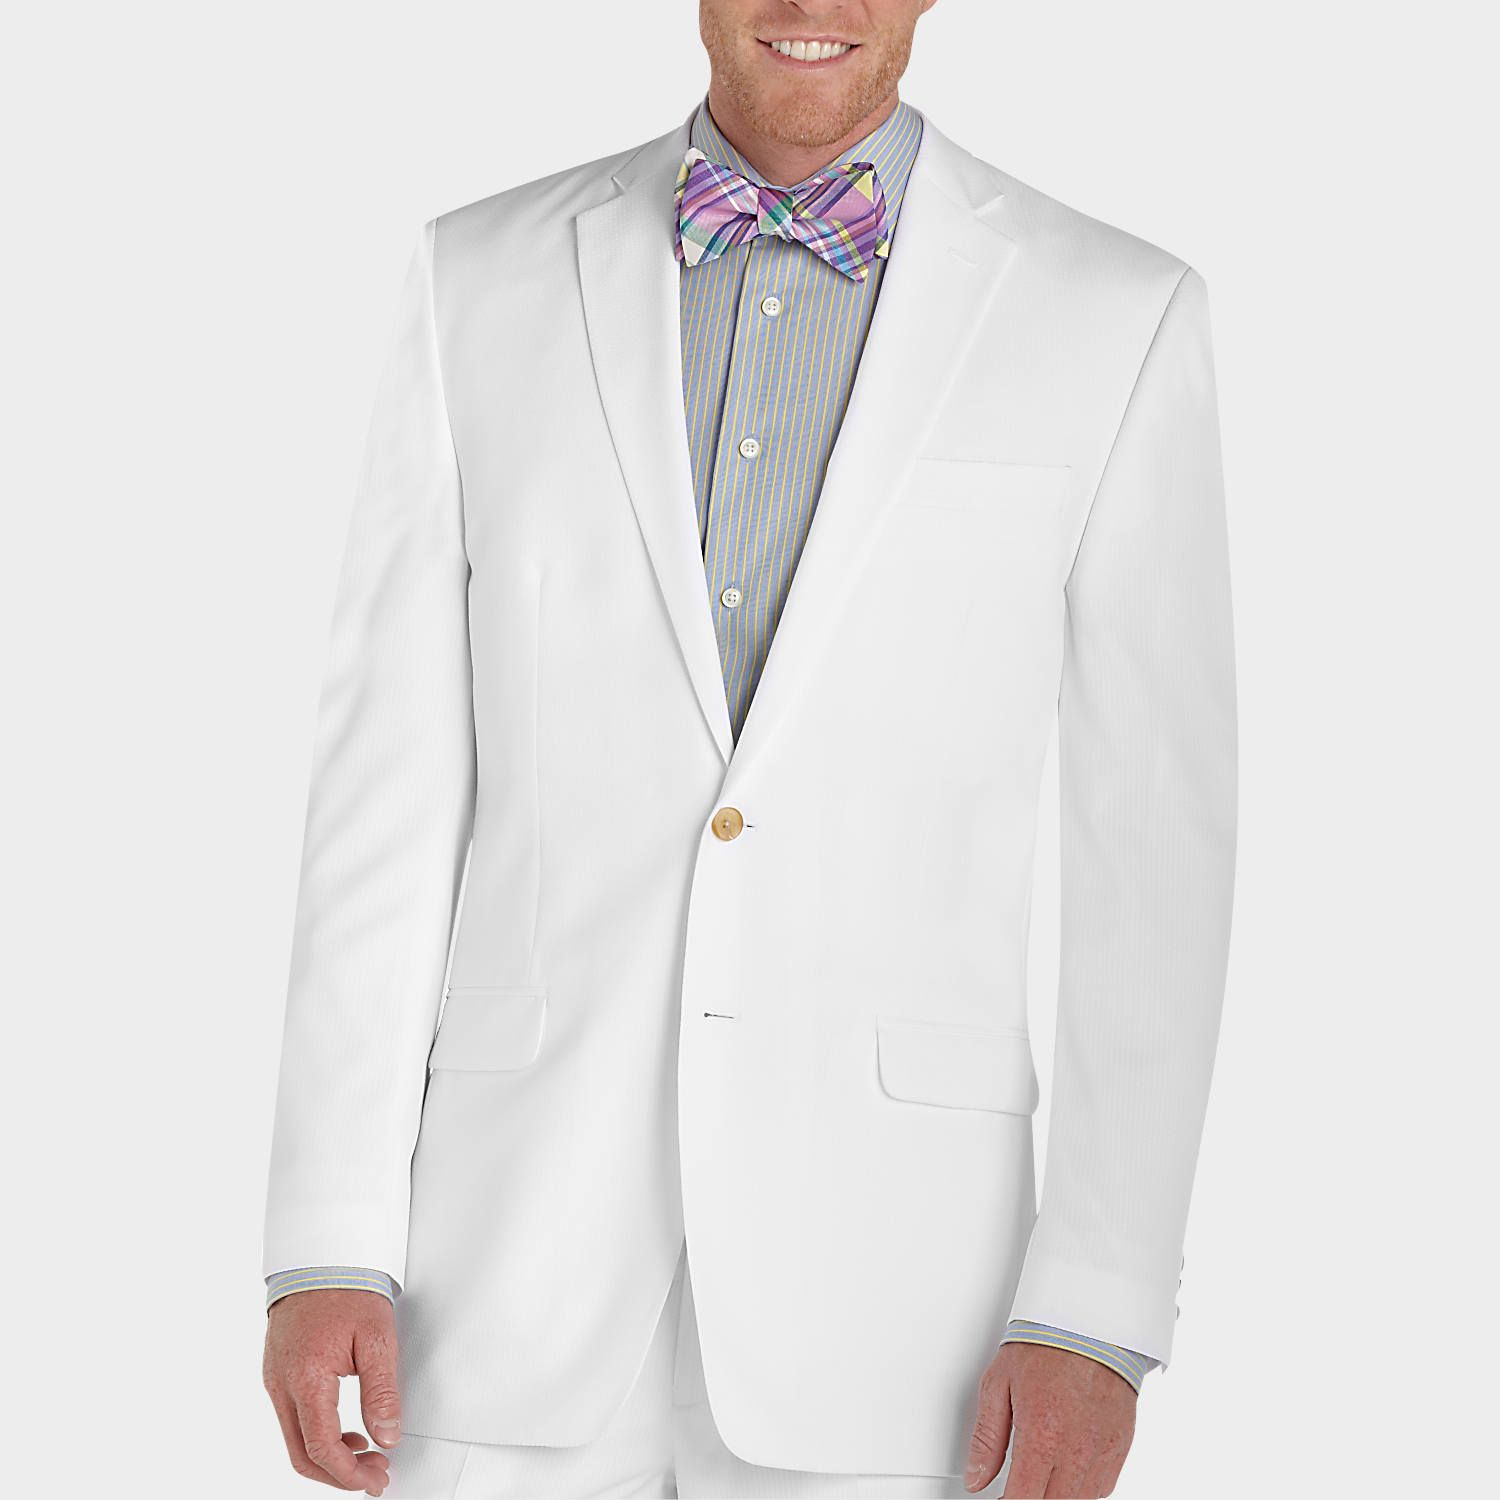 Lauren By Ralph Lauren Cream Seersucker Suit Men S Wearhouse